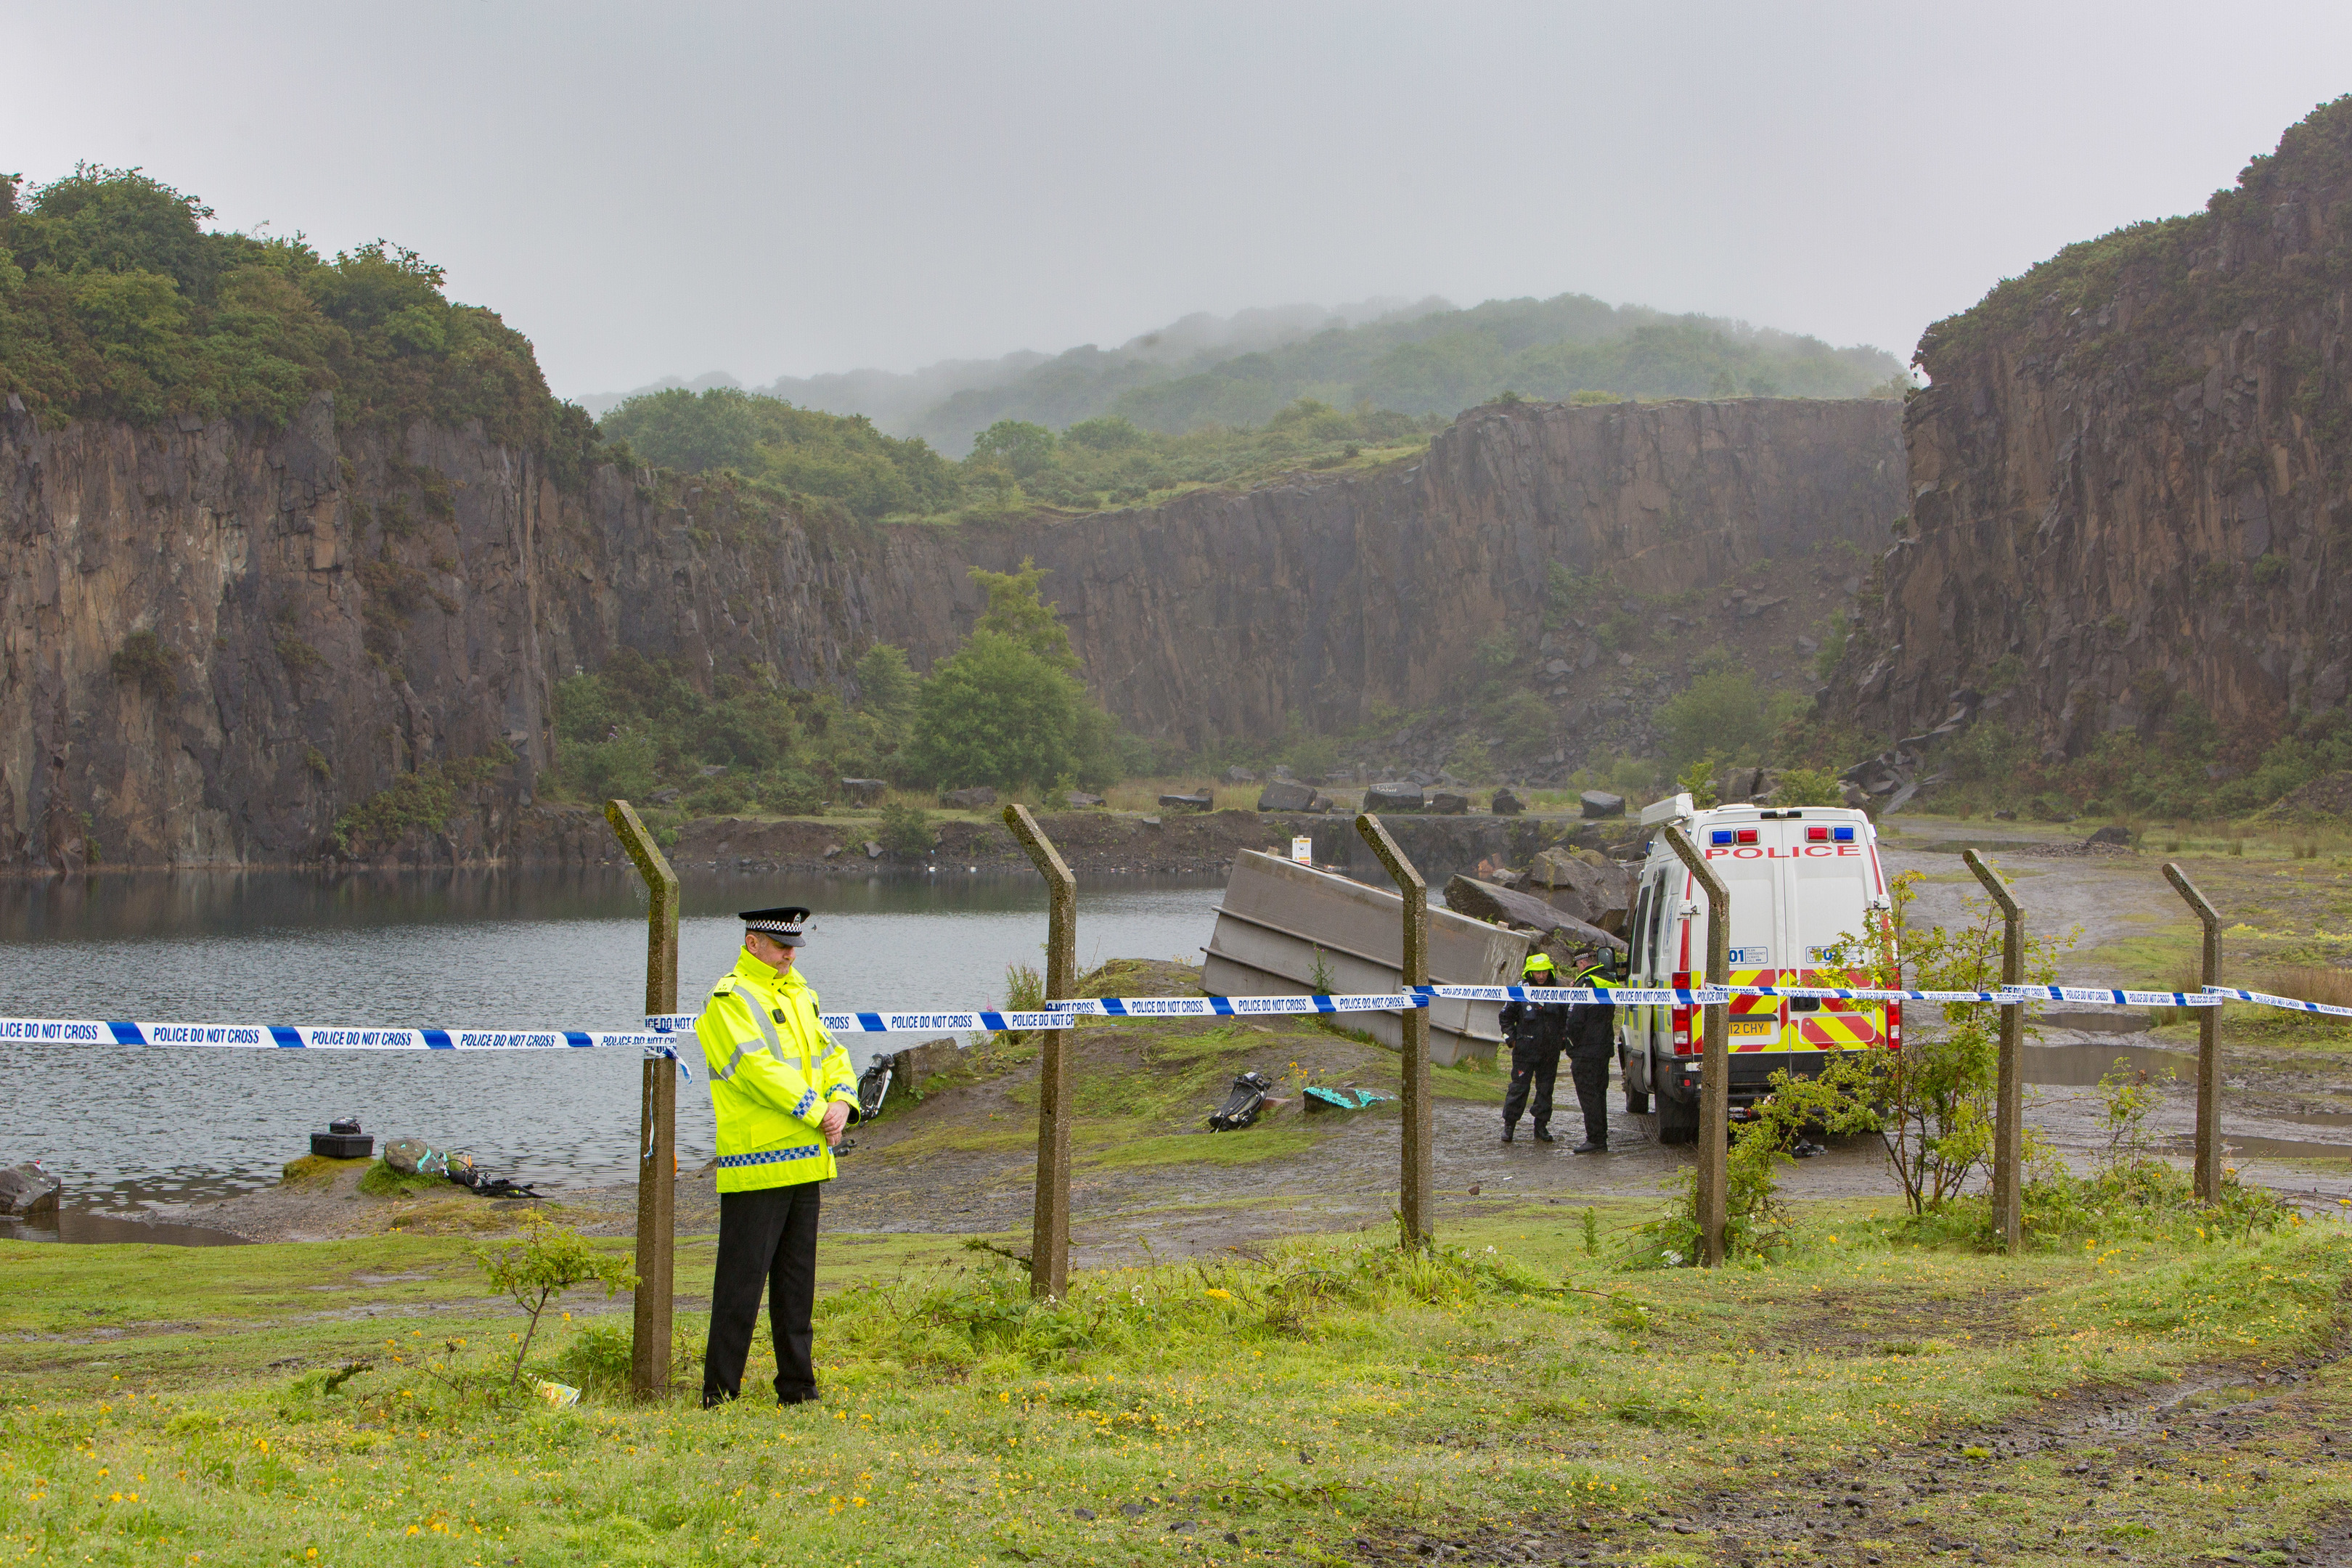 Prestonhill Quarry was the scene of another tragedy last month.